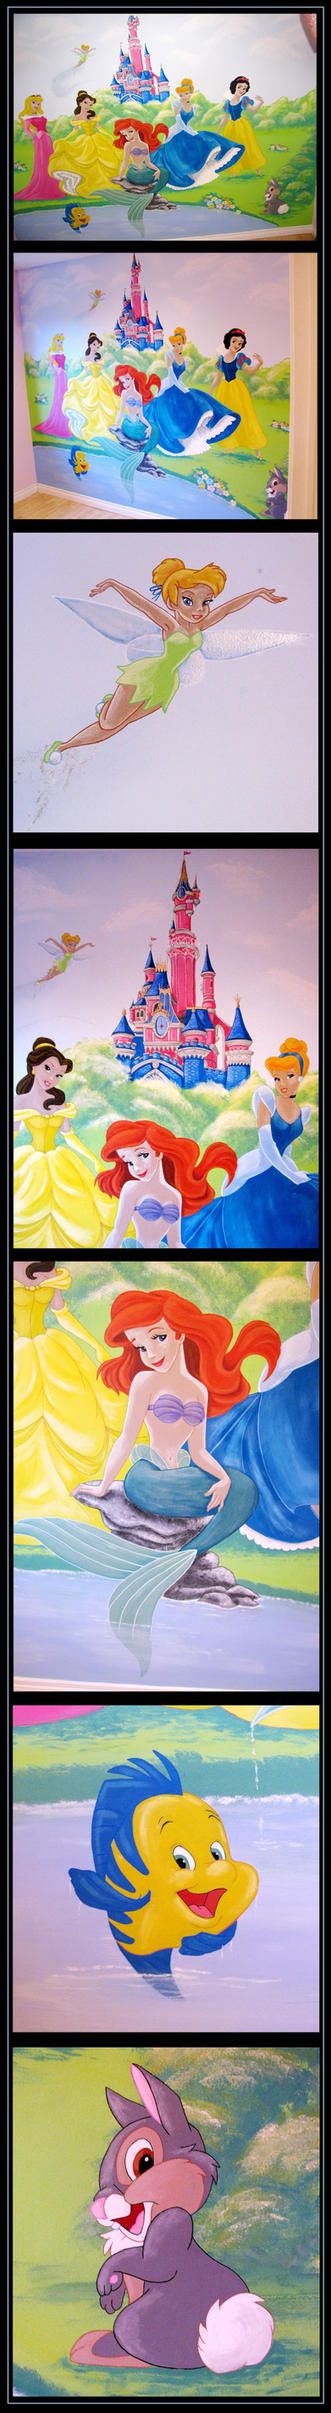 Disney princess mural commission by nightwing1975 on for Disney princess ballroom mural